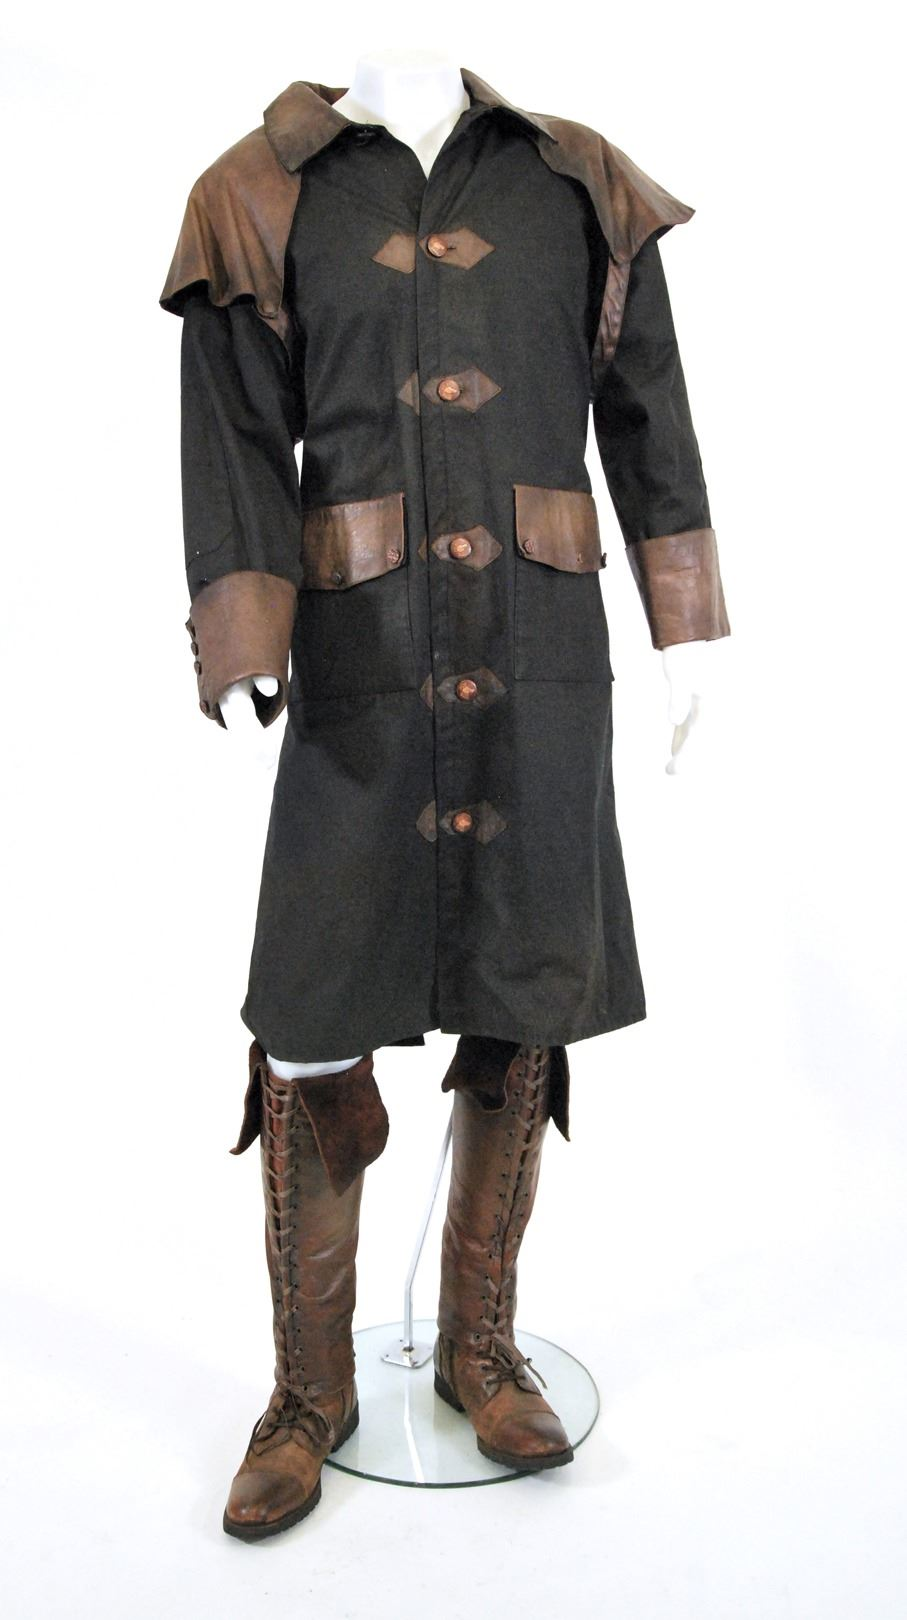 pinocchio signature ensemble from Once Upon a Time Season 1. 1